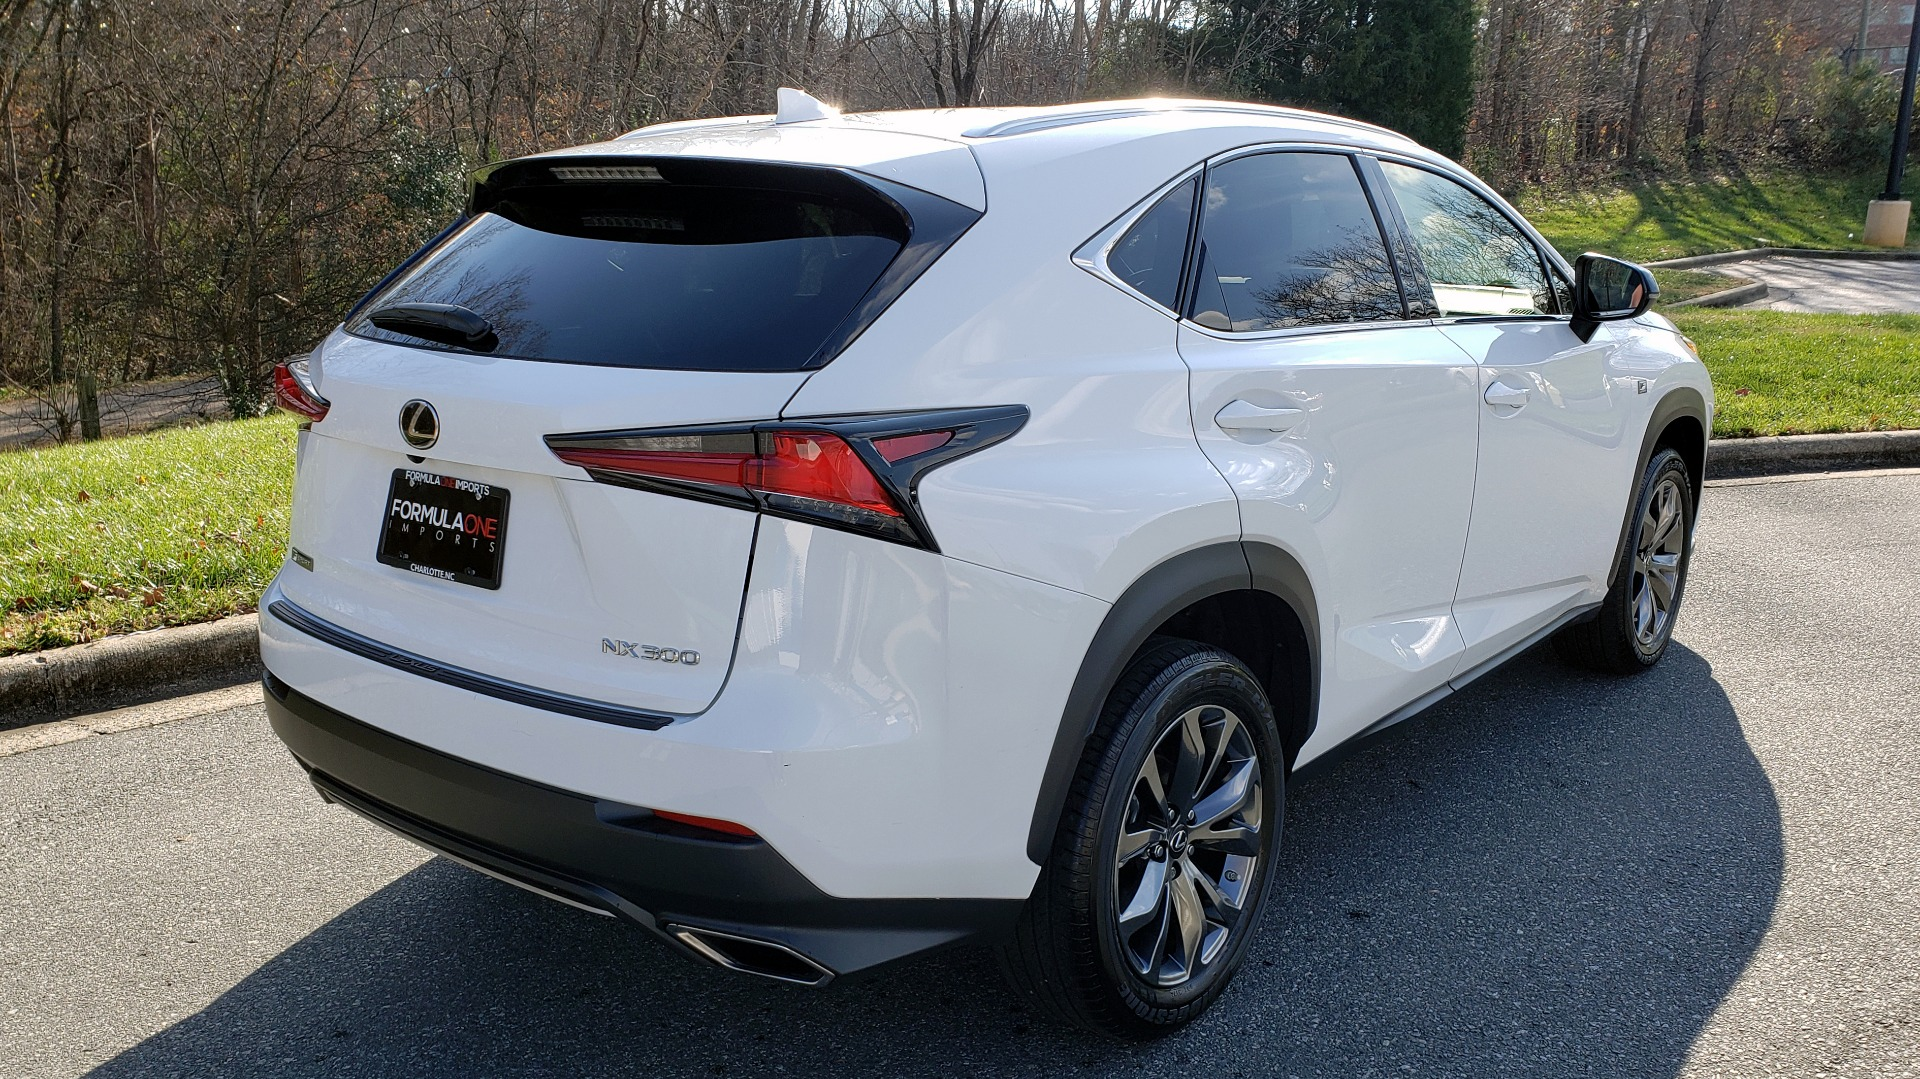 Used 2019 Lexus NX 300 F-SPORT / 2.0L TURBO / LEATHER / 18IN WHEELS / REARVIEW for sale Sold at Formula Imports in Charlotte NC 28227 6